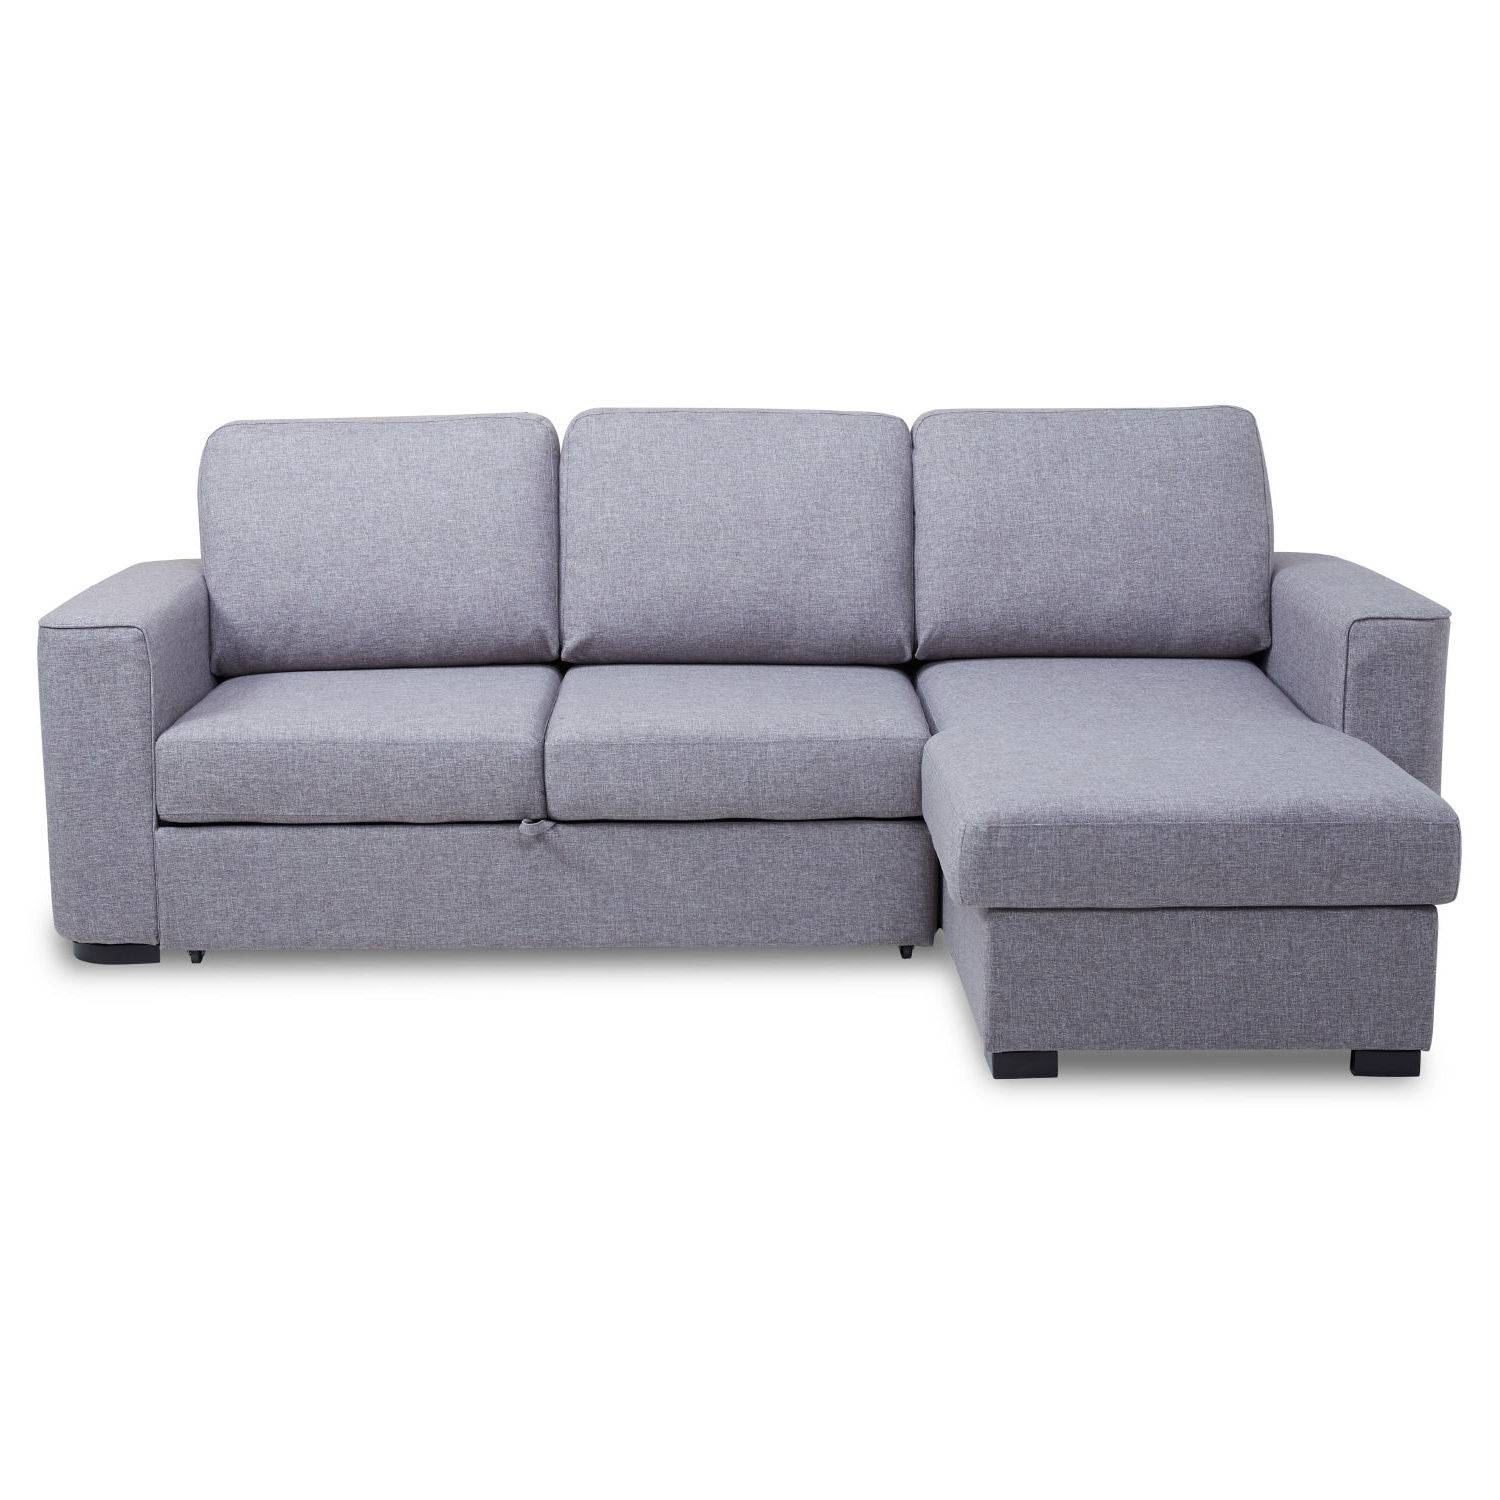 Est Corner Sofa Bed - Leather Sectional Sofa with regard to Leather Corner Sofa Bed (Image 11 of 30)